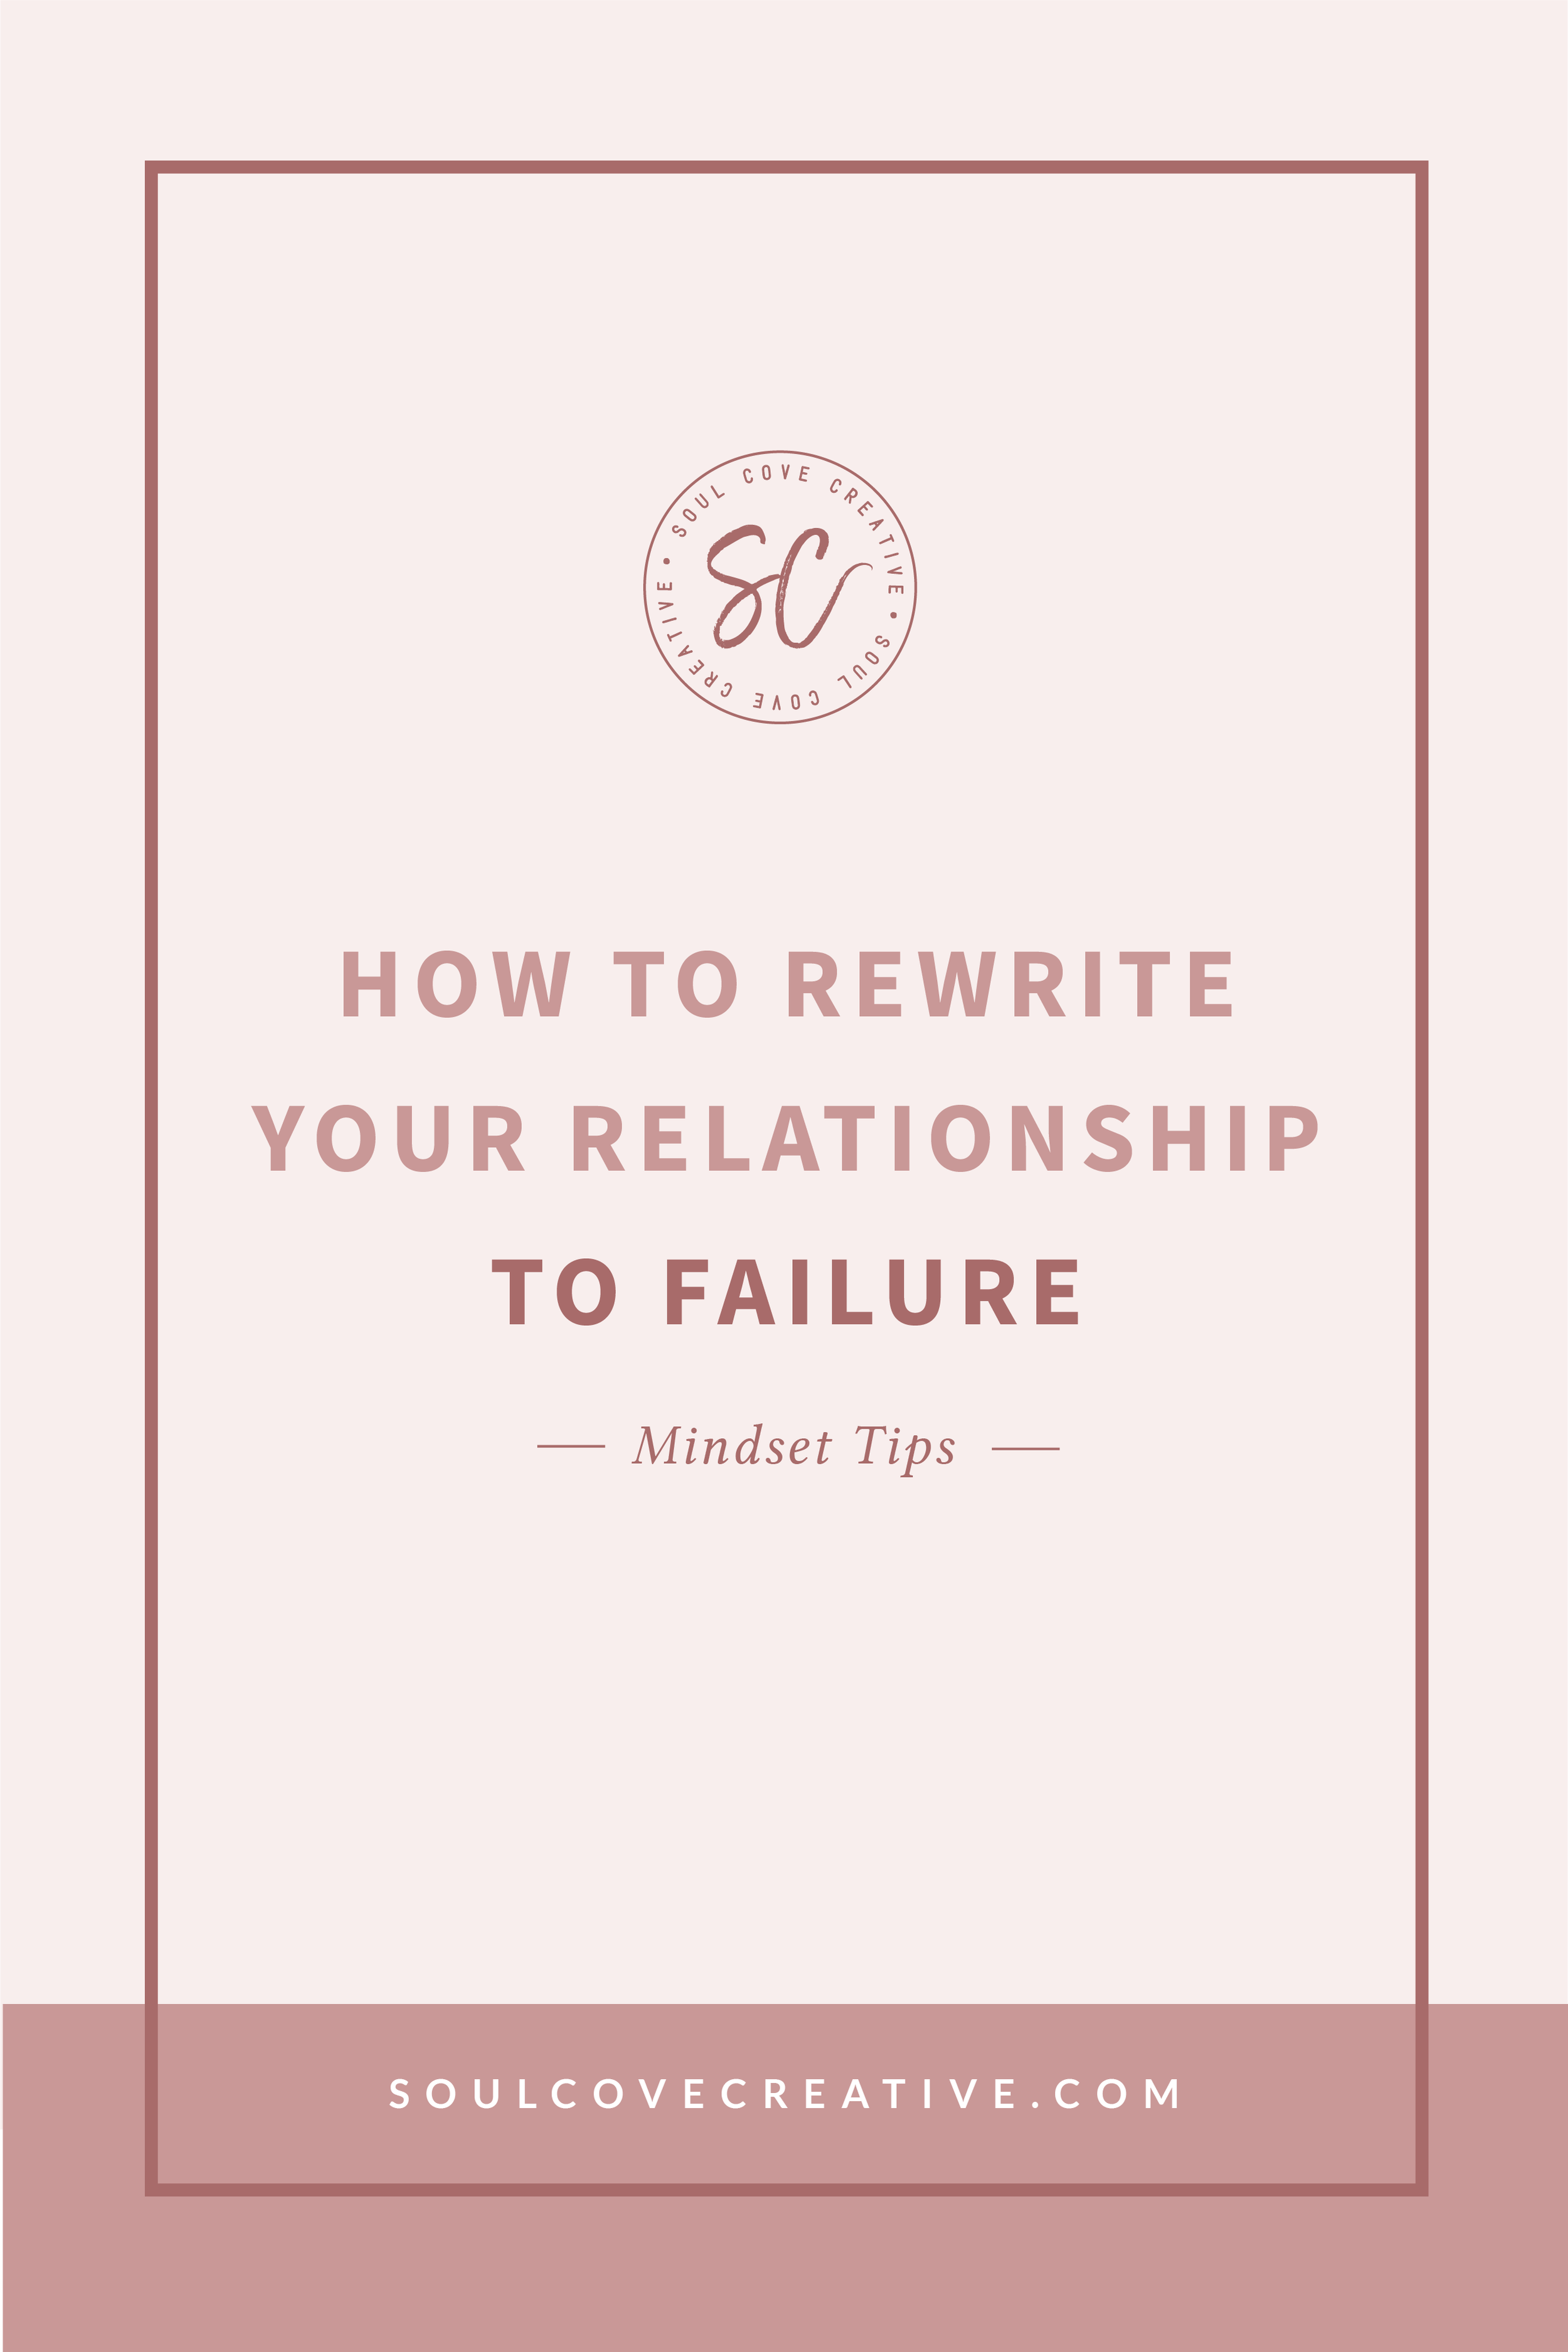 How to rewrite your relationship to failure